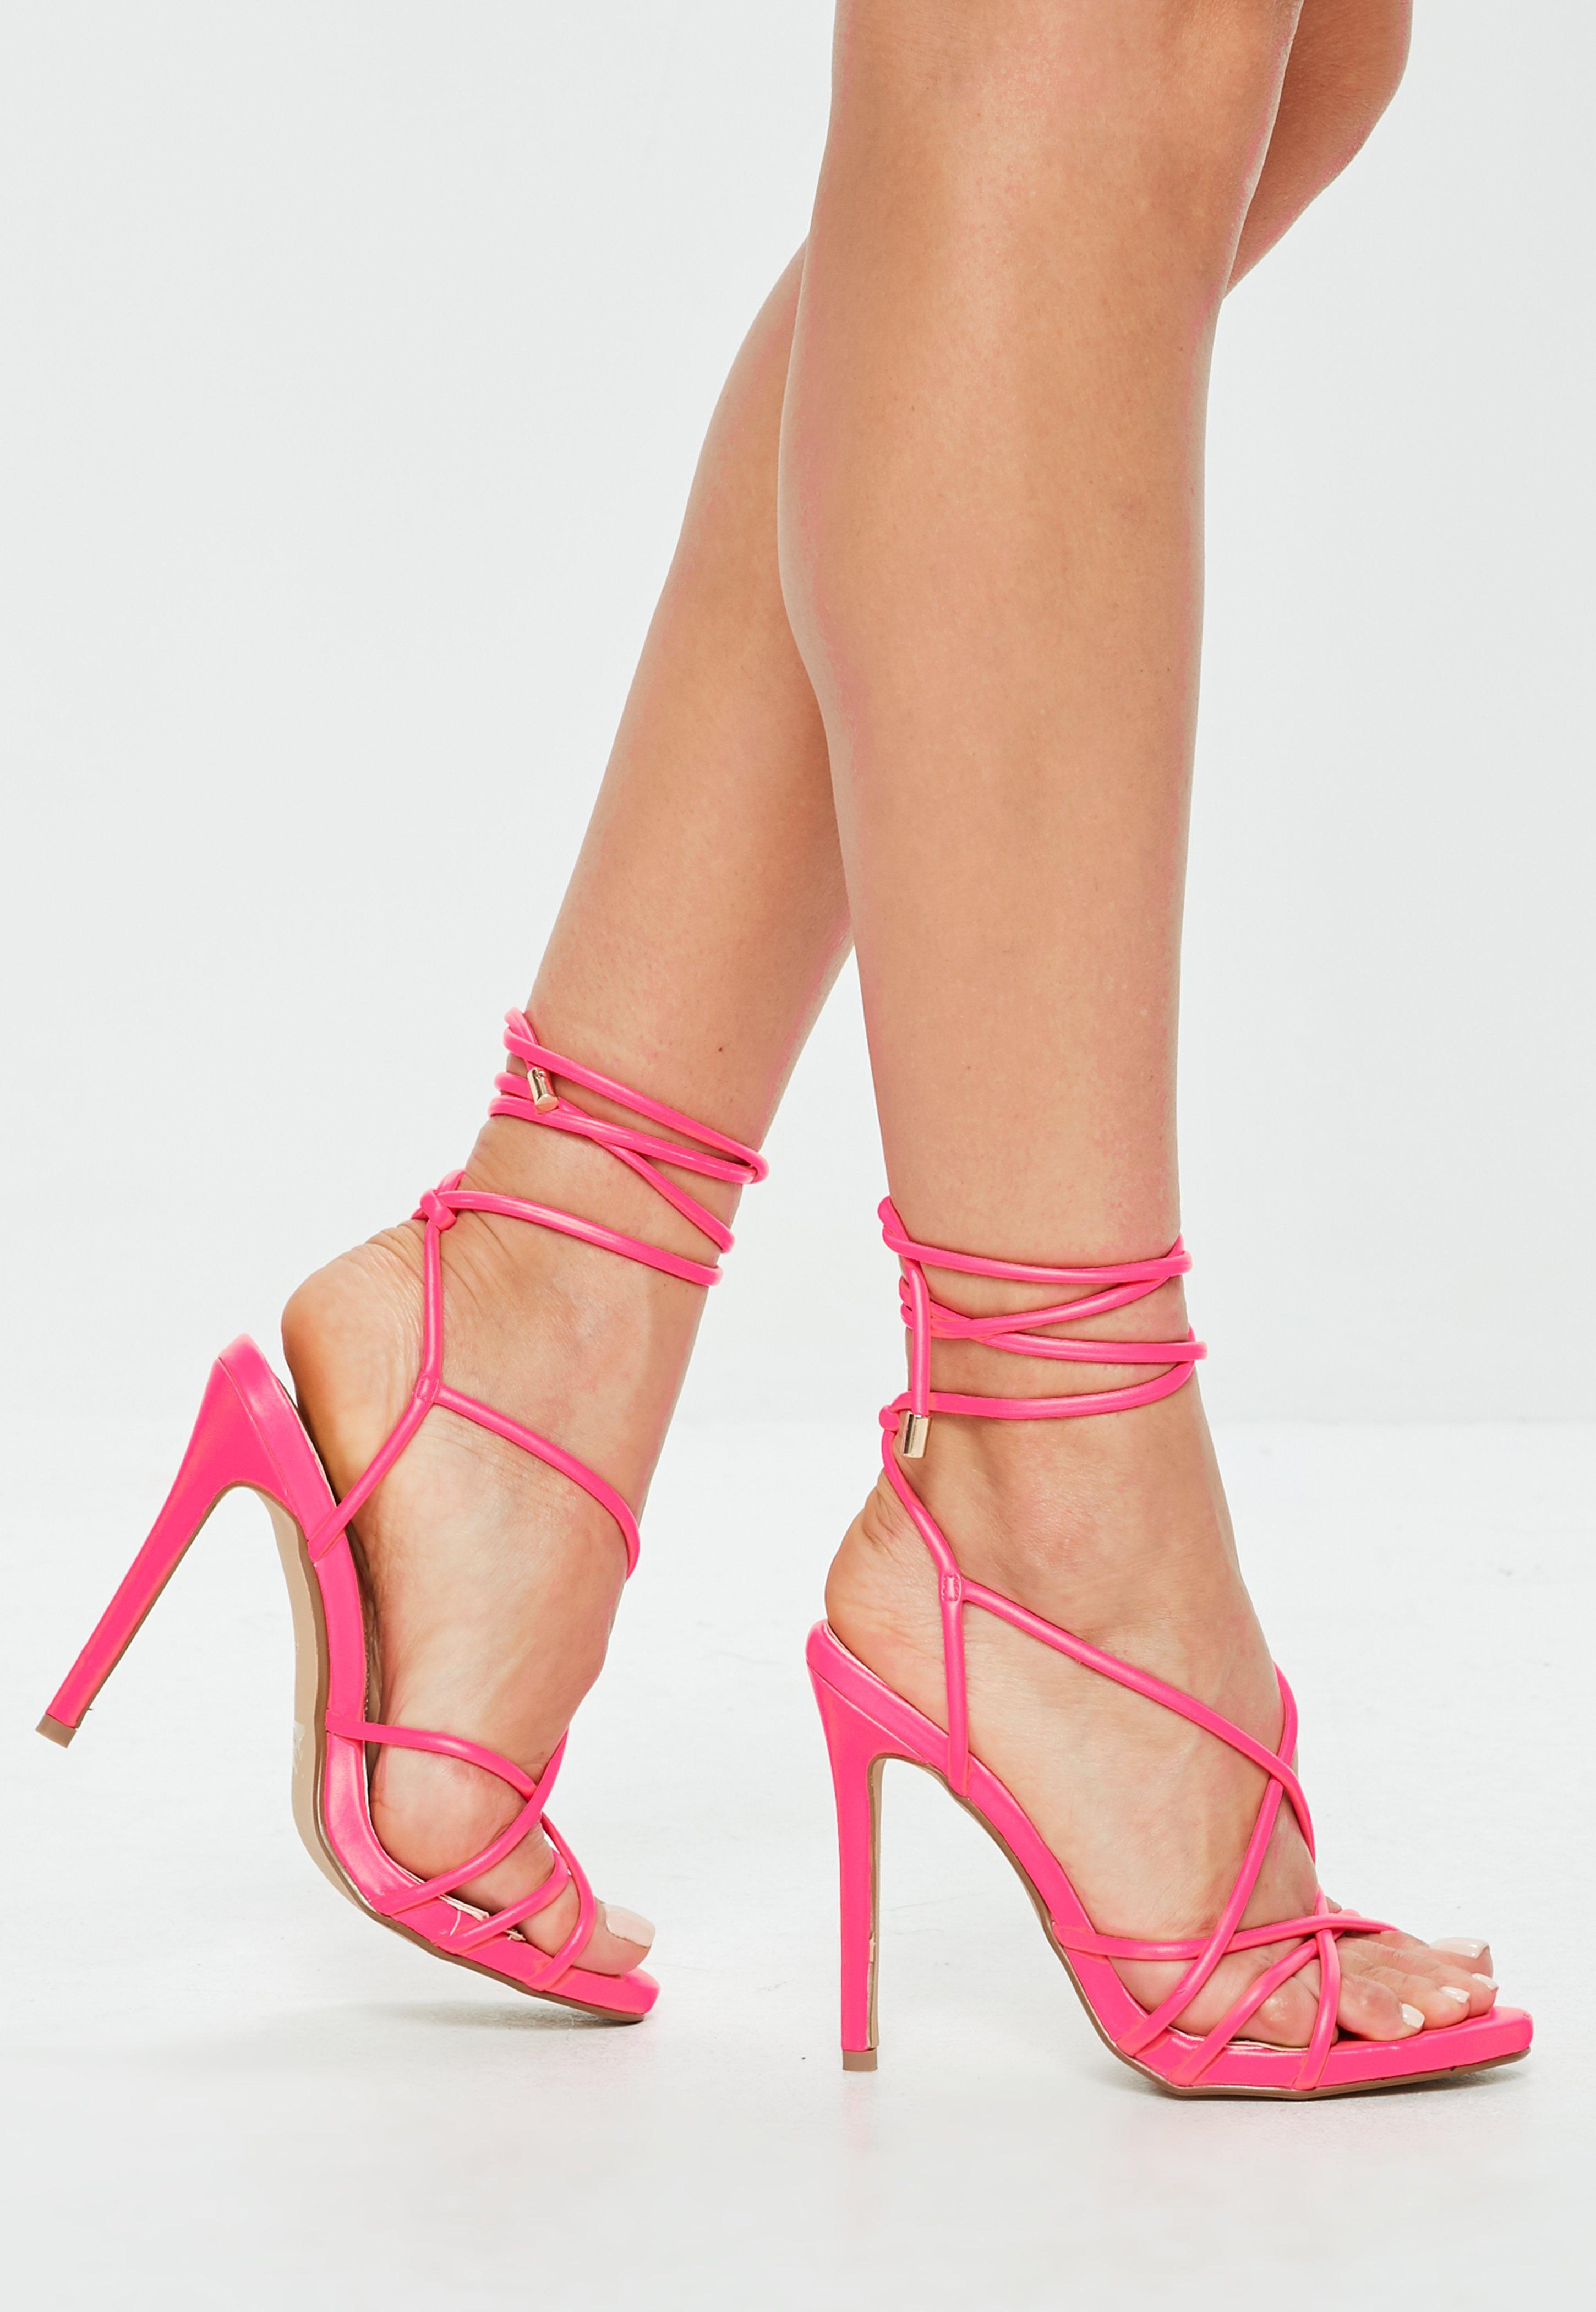 Read more Pink & Burbundy Quilted Platform Sandals aOsw8F